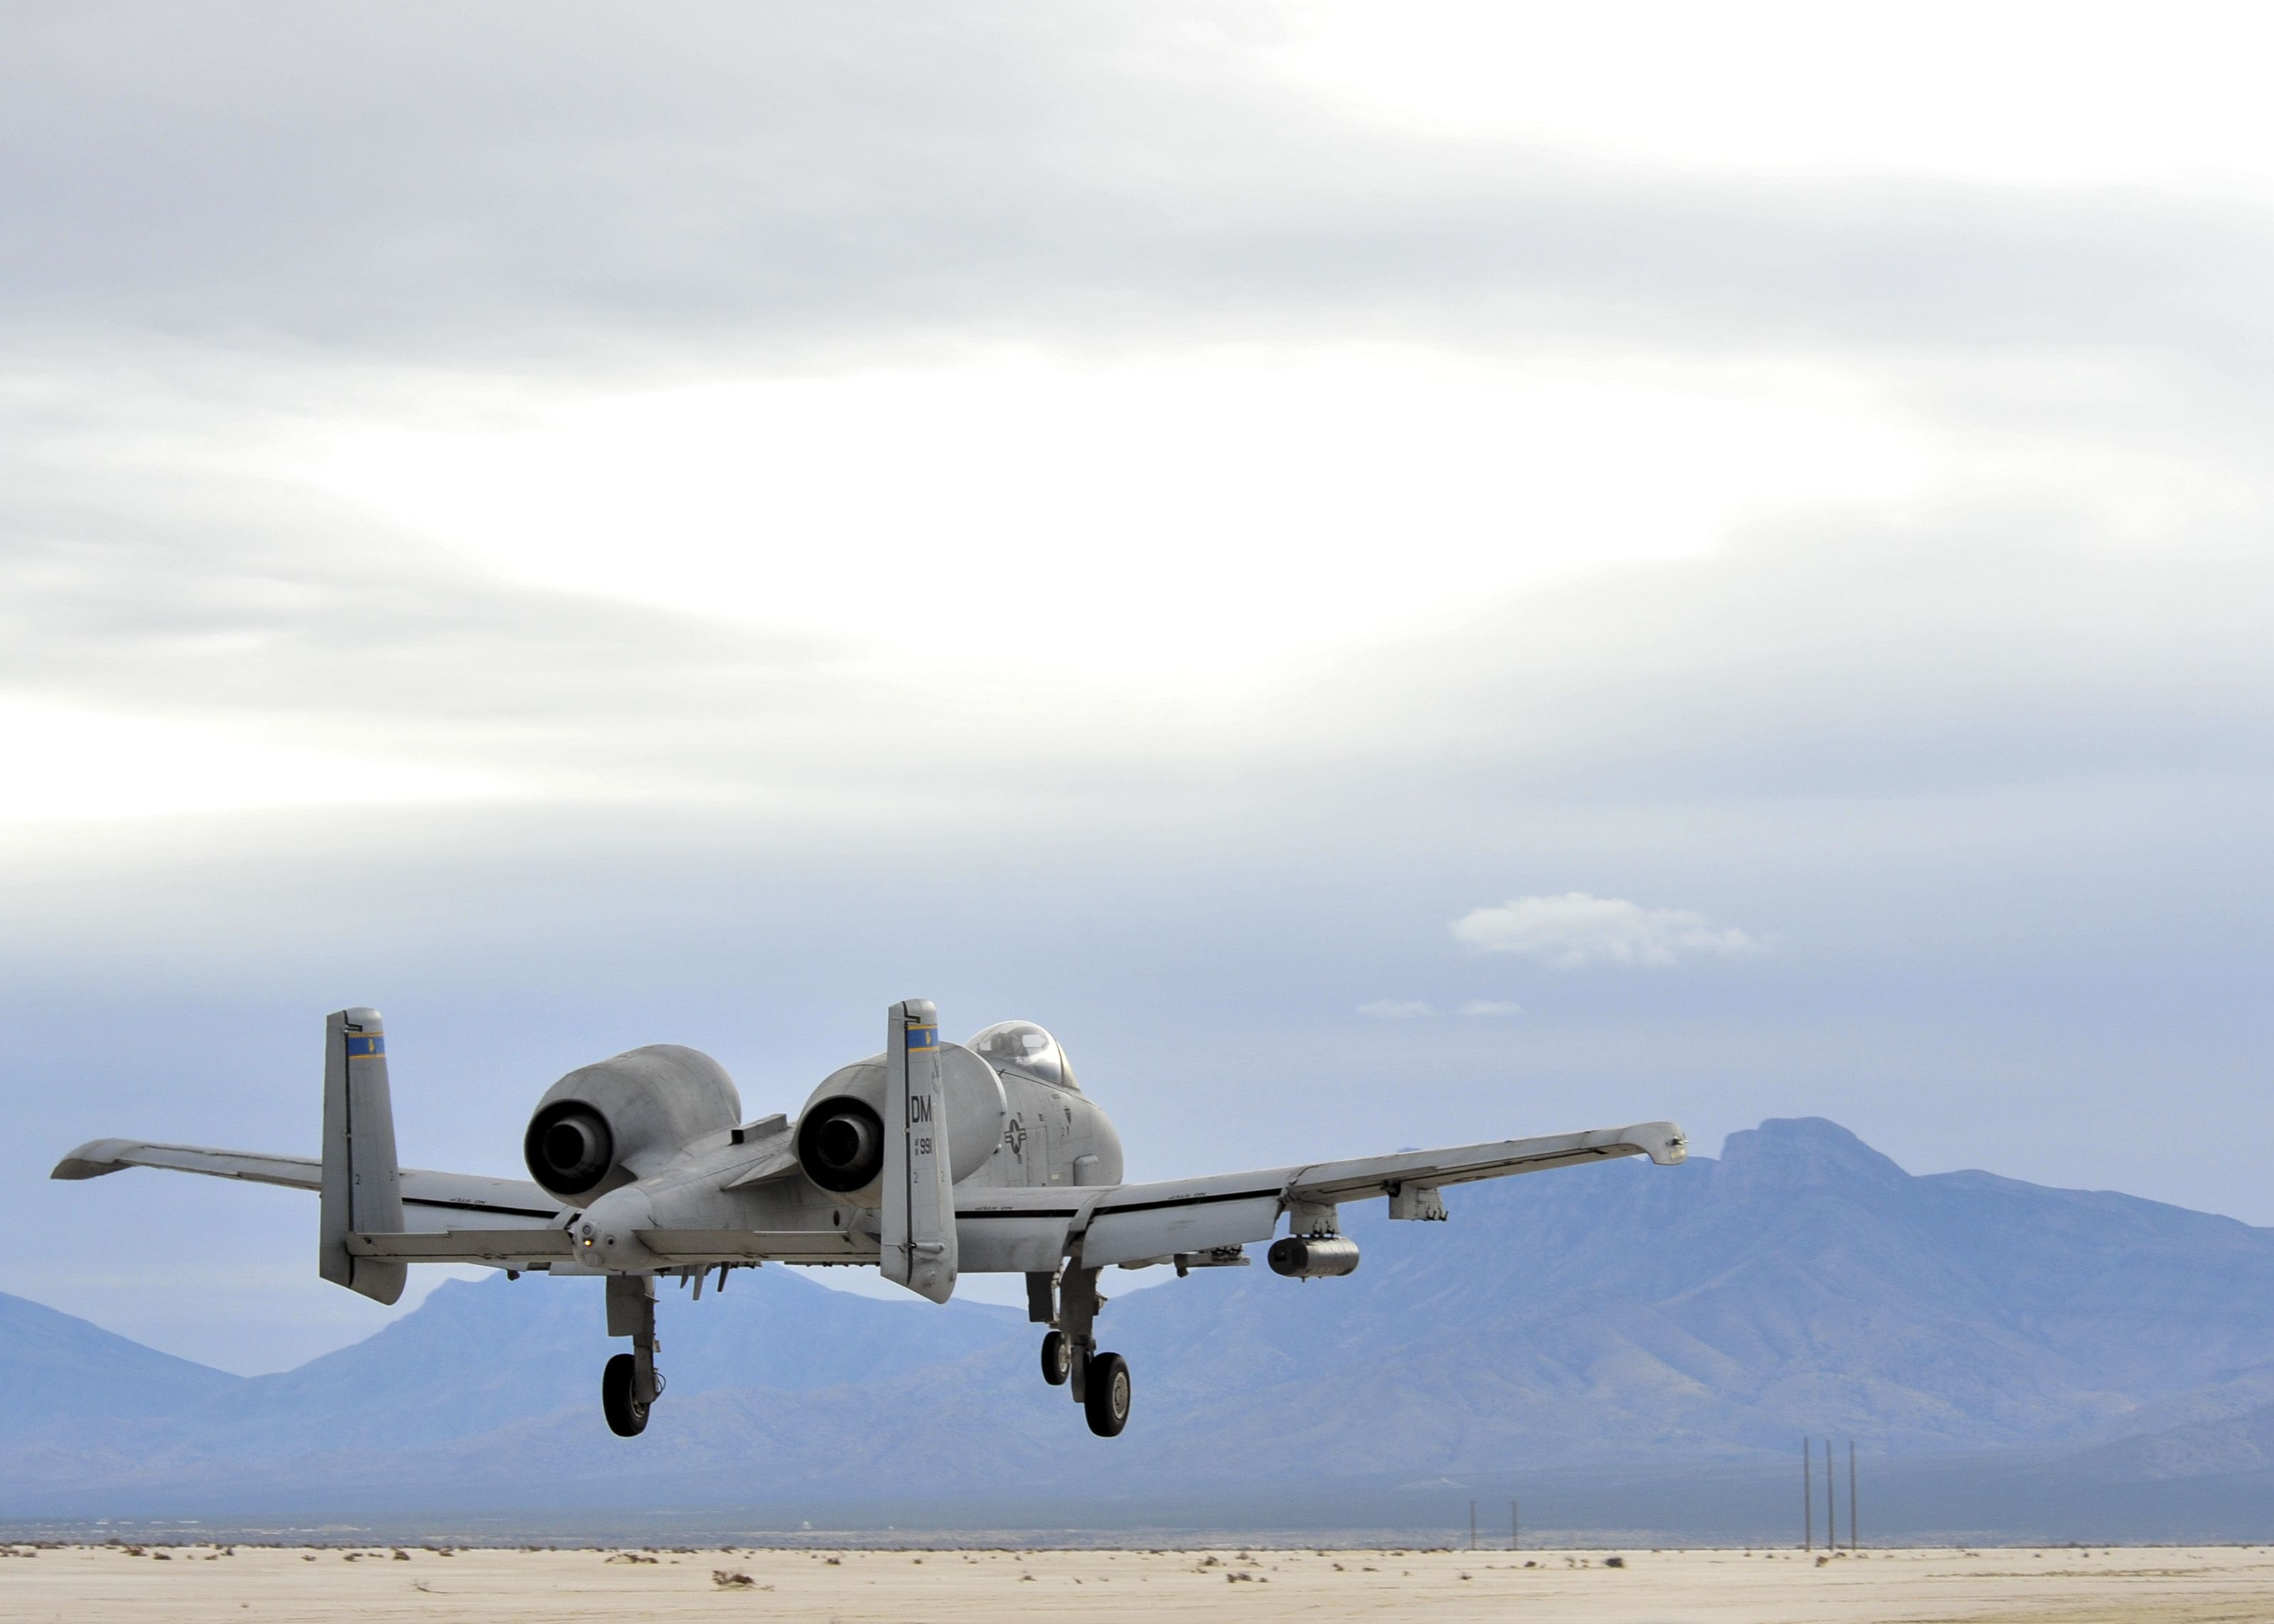 An A-10C Thunderbolt II from the 354th Fighter Squadron performs a low pass during training at White Sands Missile Range, N.M., Dec. 4, 2014. Pilots 354th FS pilots traveled to the missile range to conduct instructor pilot training for austere landing on unimproved surfaces. (U.S. Air Force photo by Airman 1st Class Chris Massey/Released)